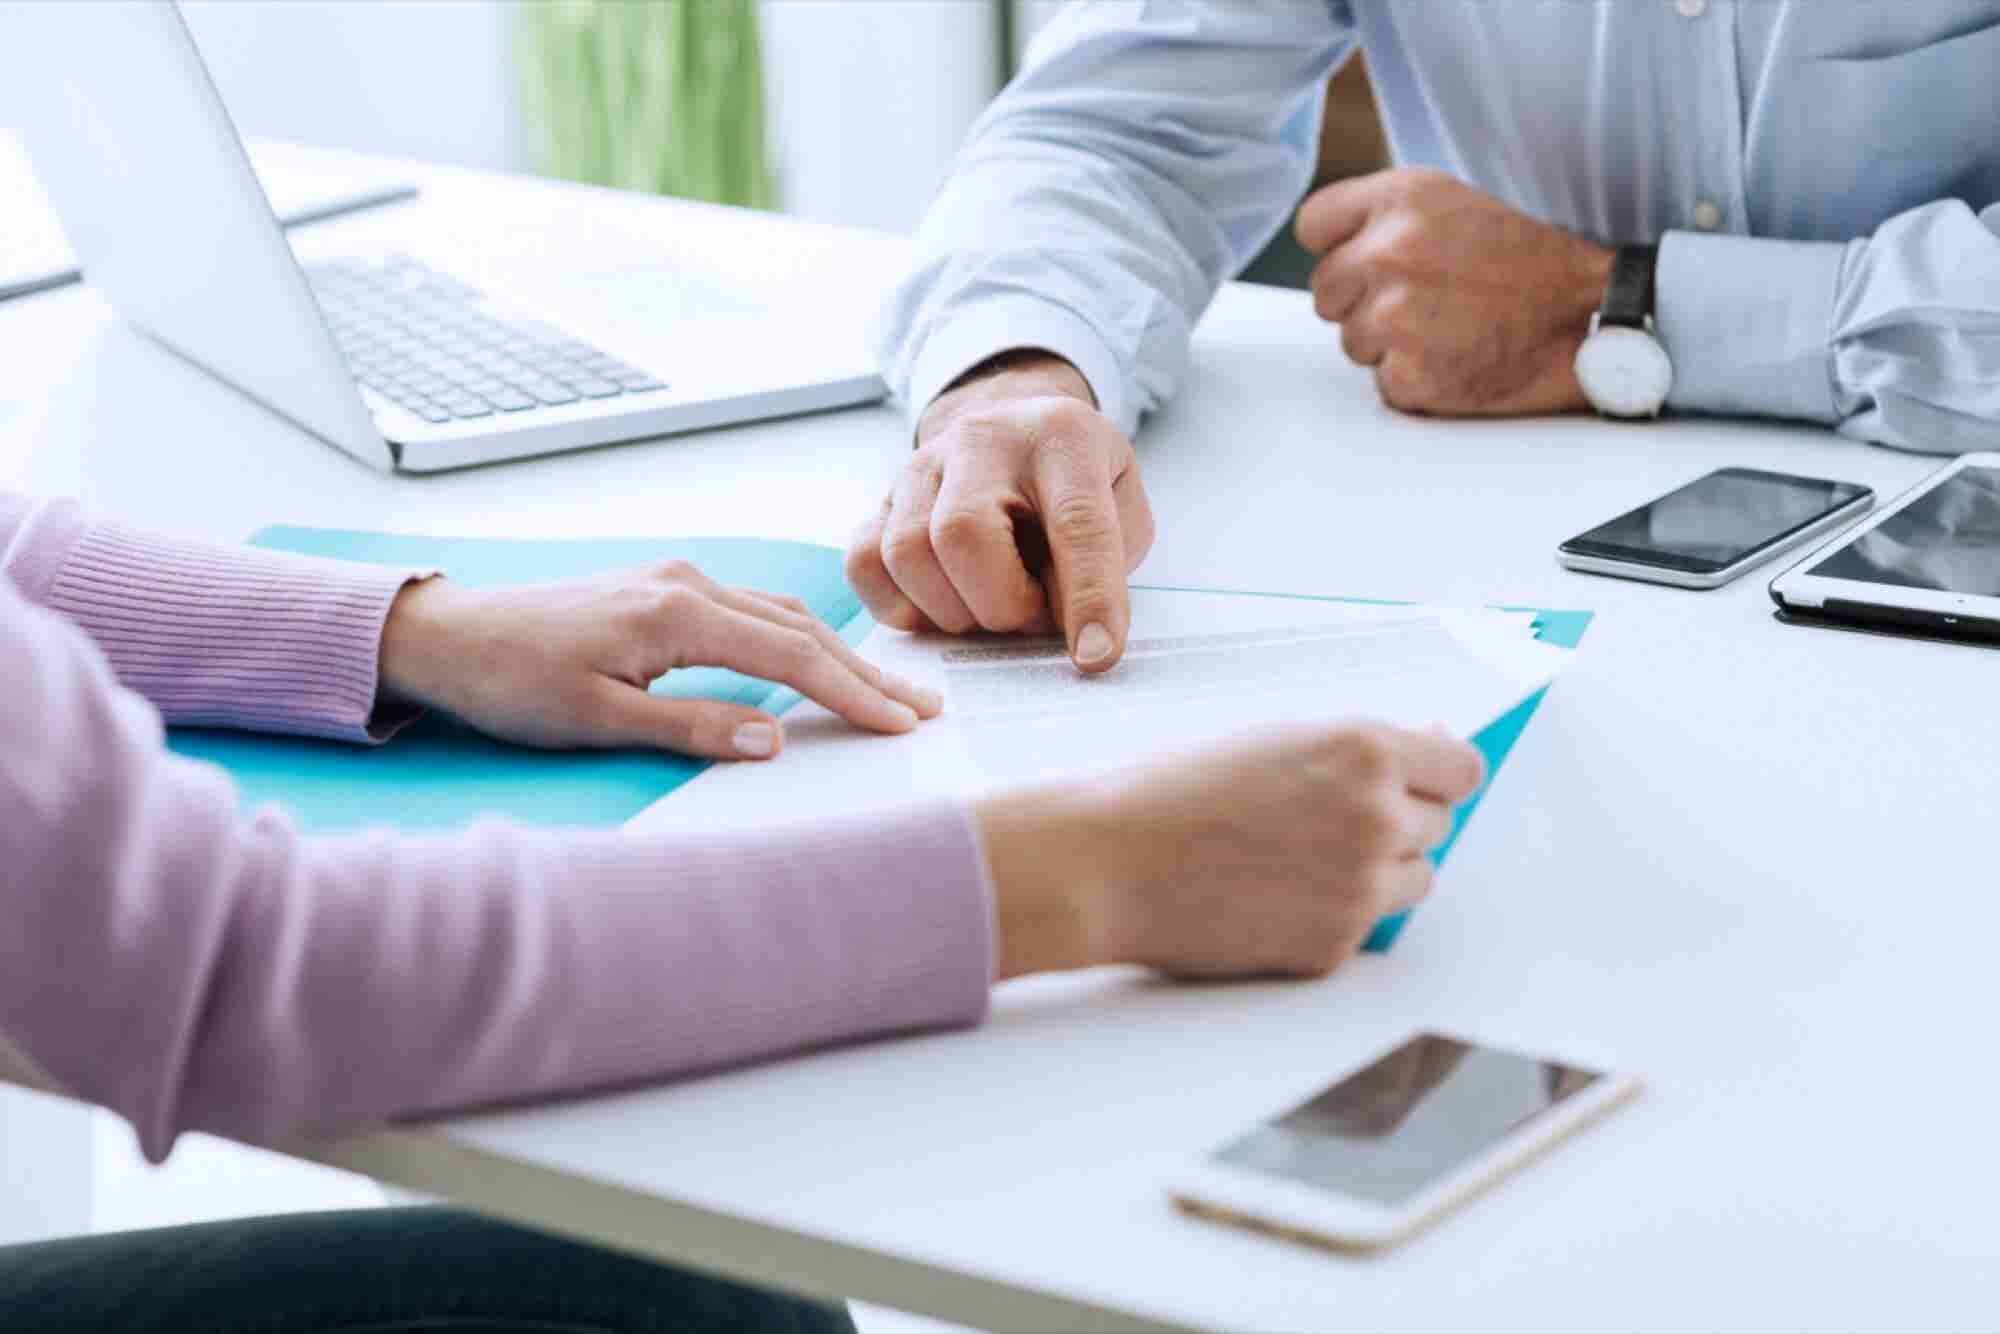 Five Steps To Delivering On The Philosophy Of Client First, Money Second